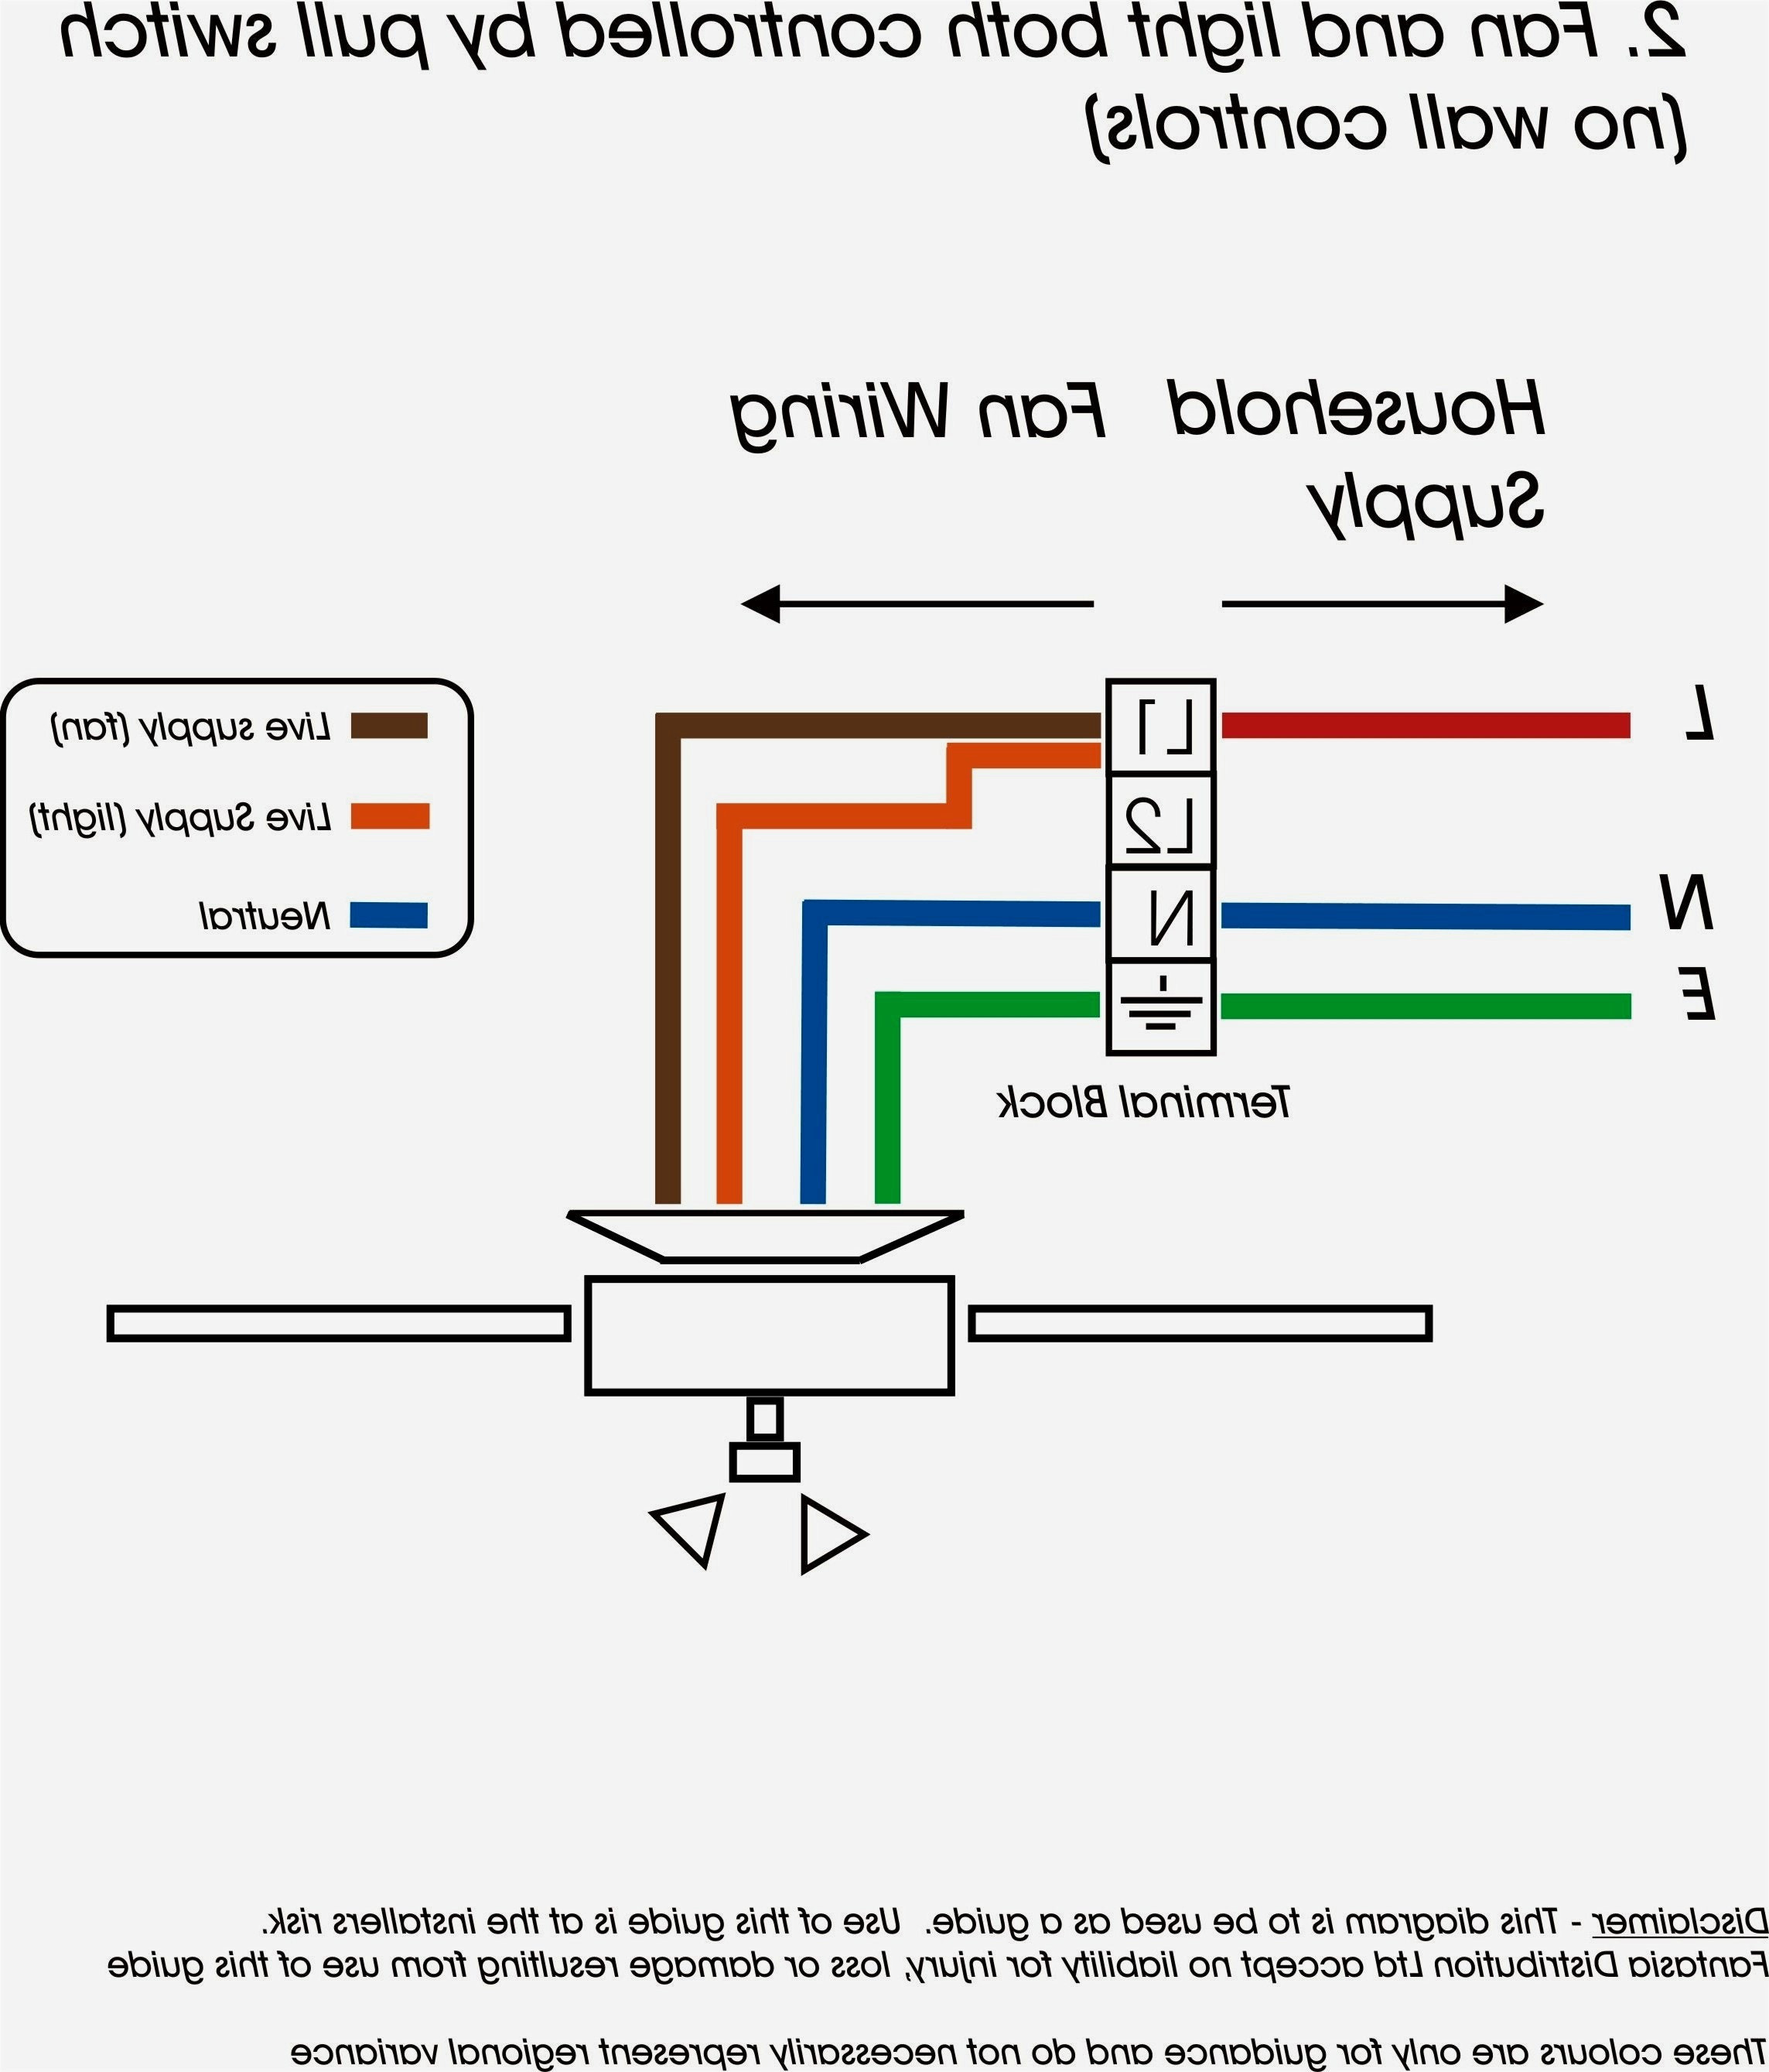 casablanca ceiling fan wiring diagram Collection-Bathroom Light Pull Chain Awesome Ceiling Fan Wiring Diagram 20 4-p